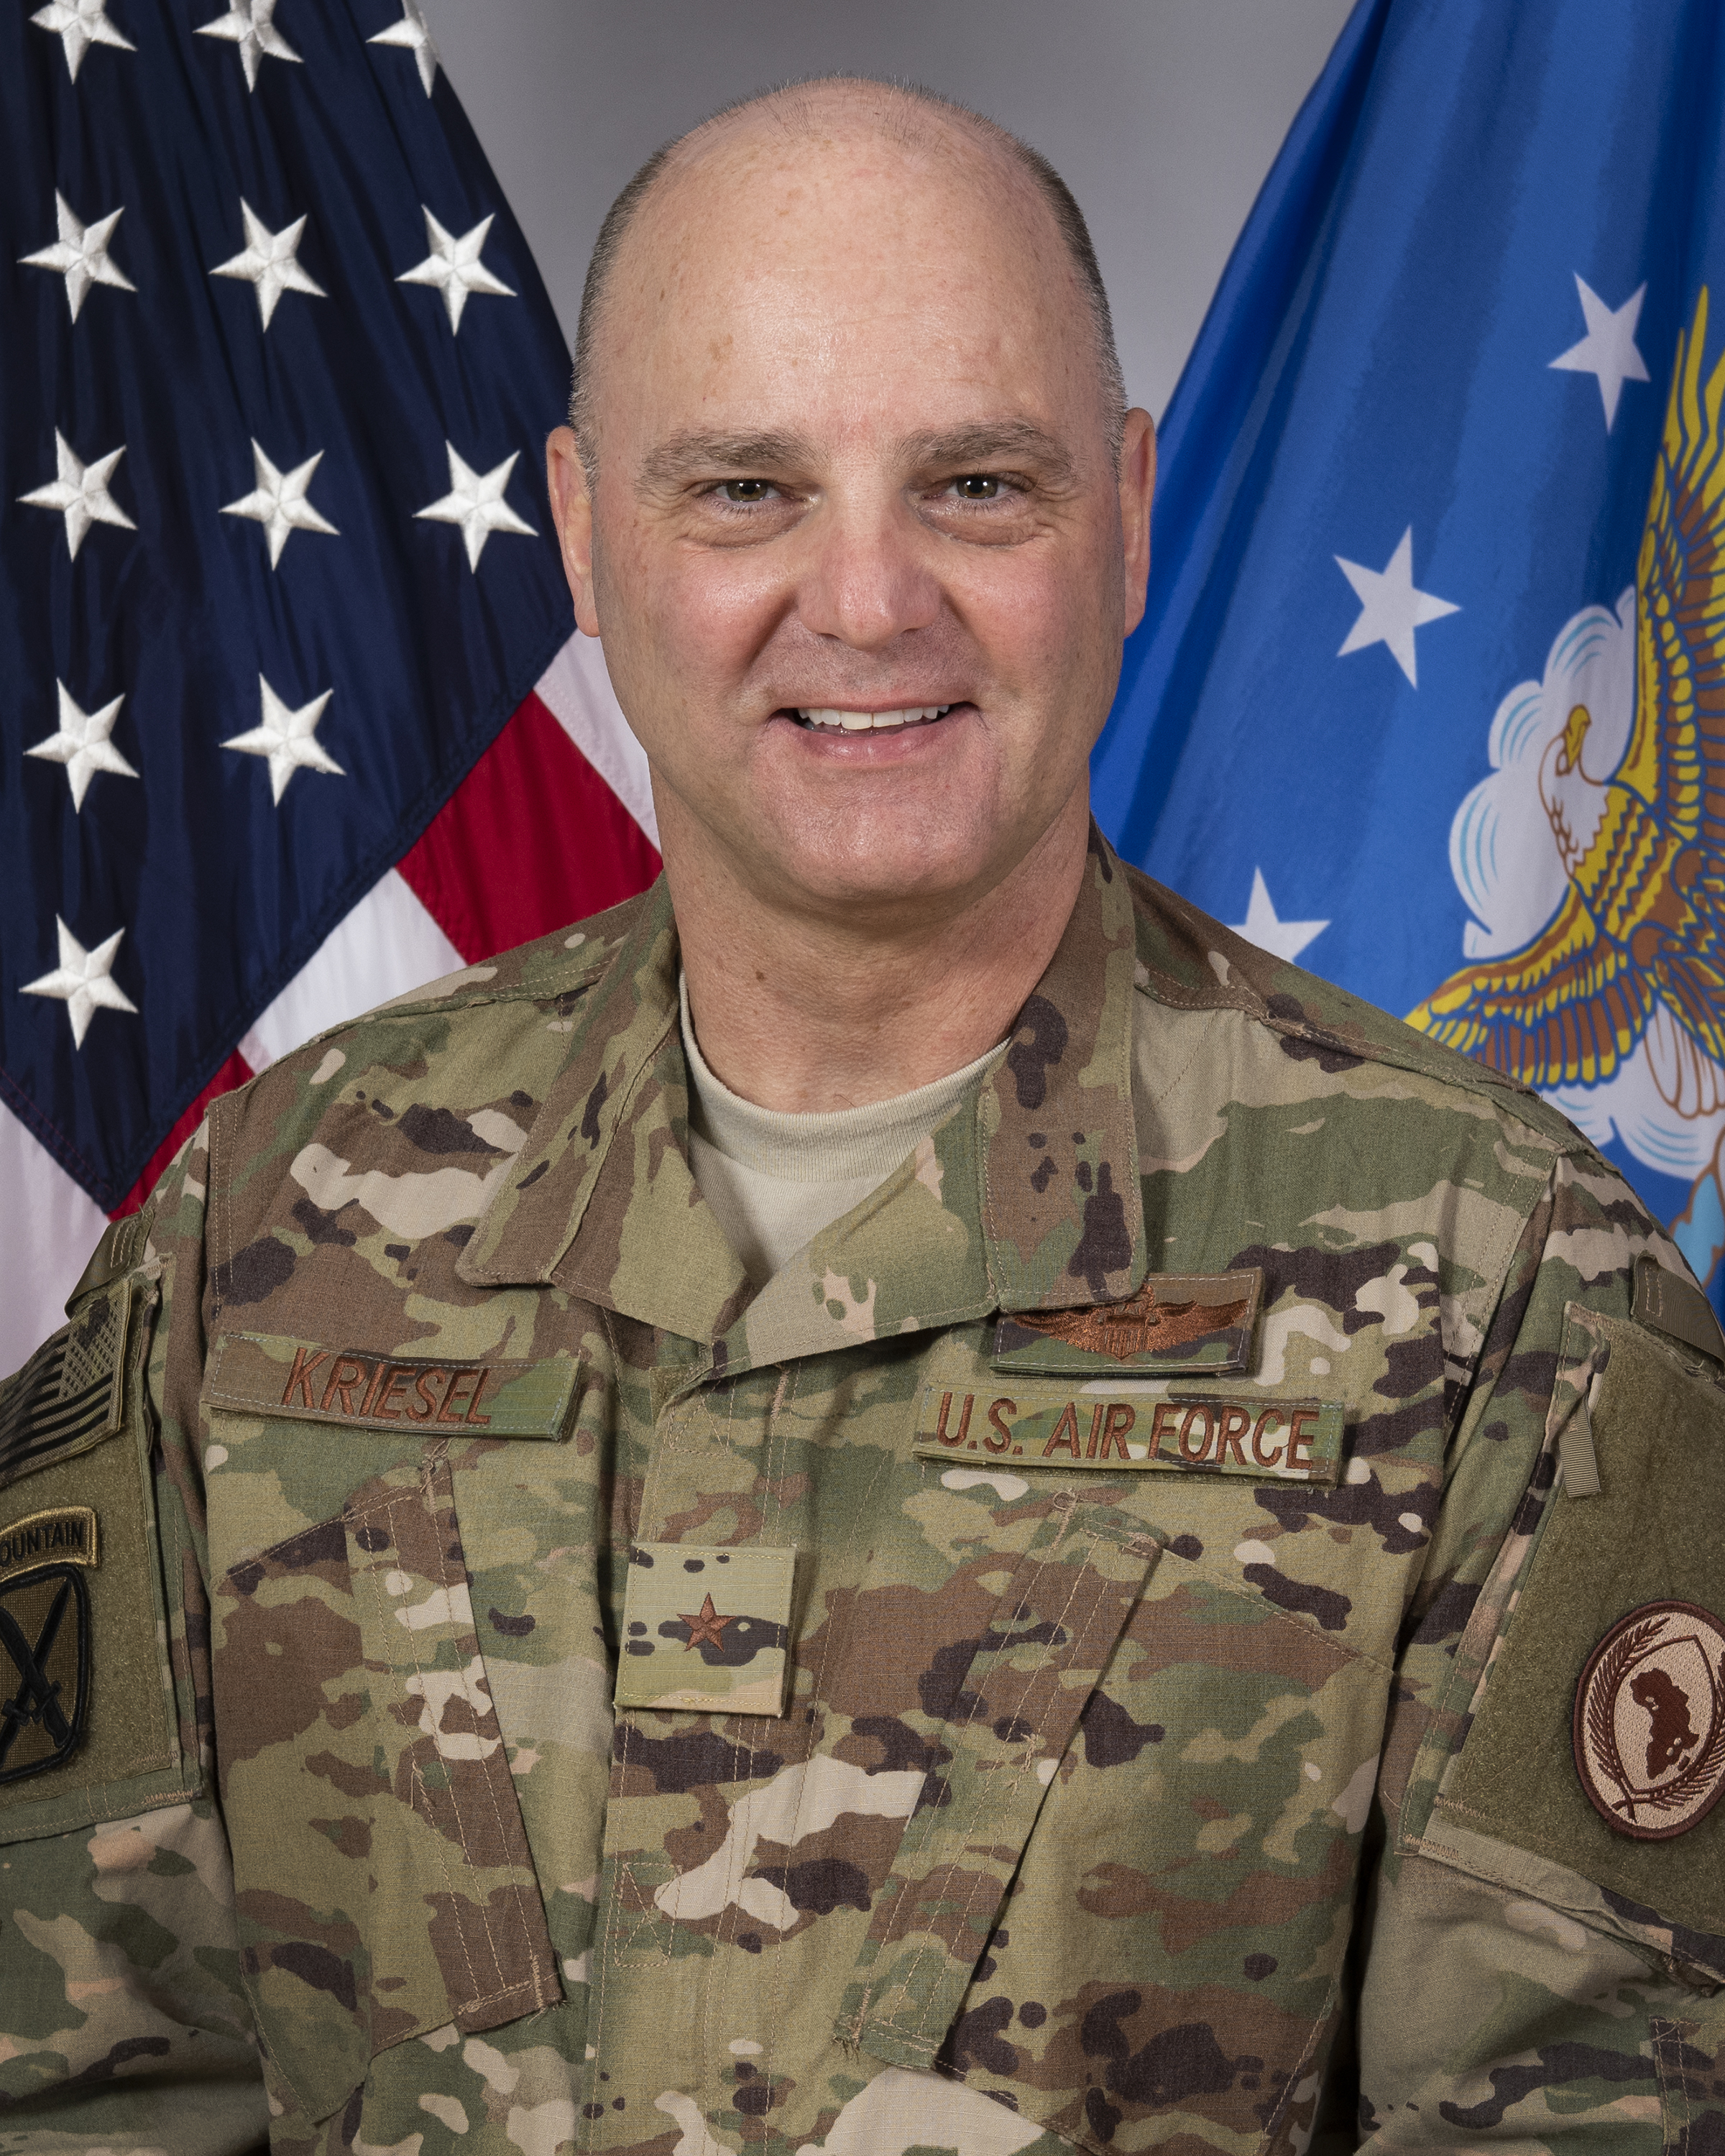 CJTF-HOA Deputy Commanding General Biography